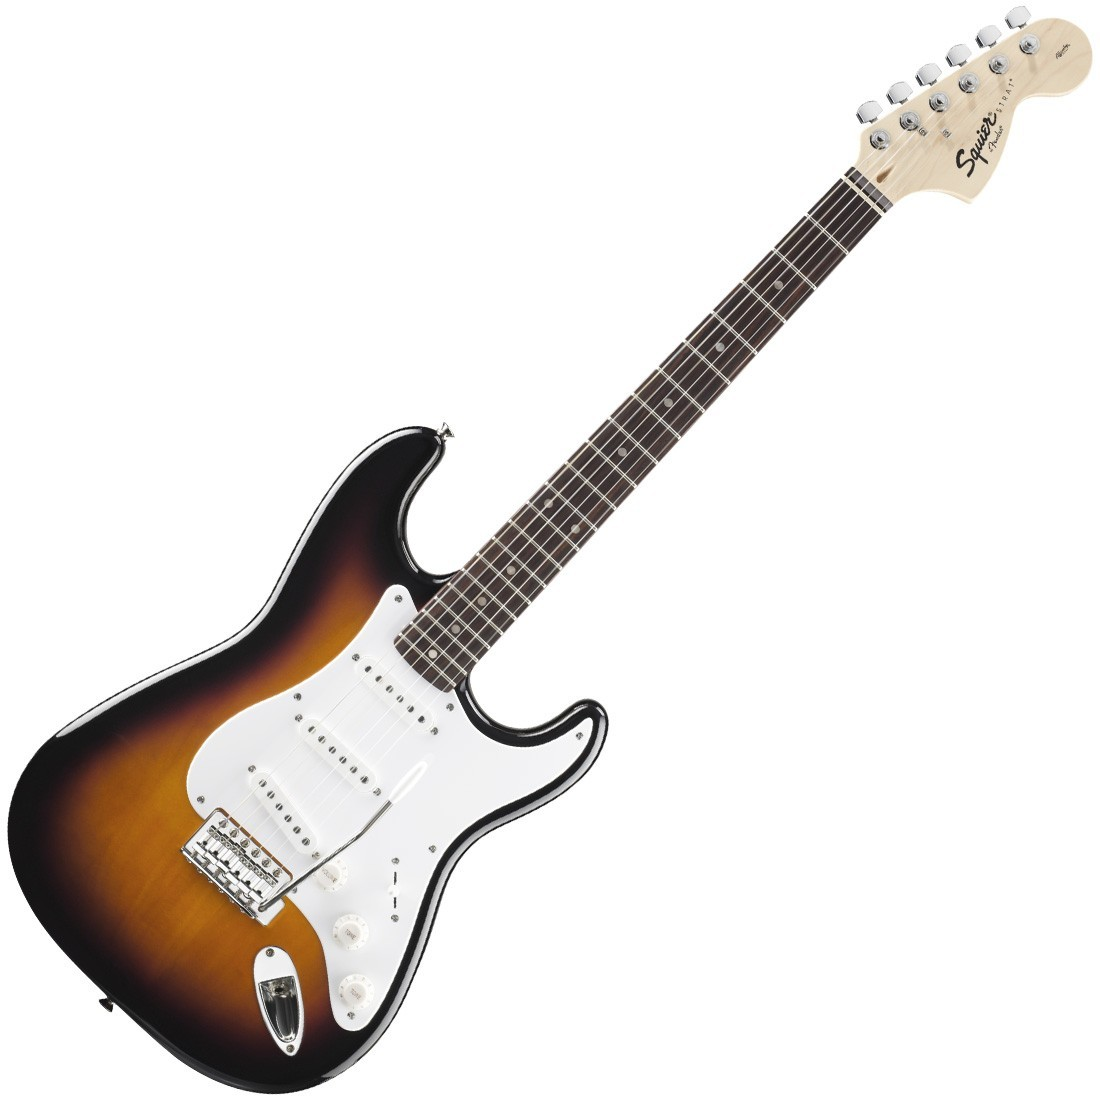 squier affinity series stratocaster 2 tone sunburst. Black Bedroom Furniture Sets. Home Design Ideas